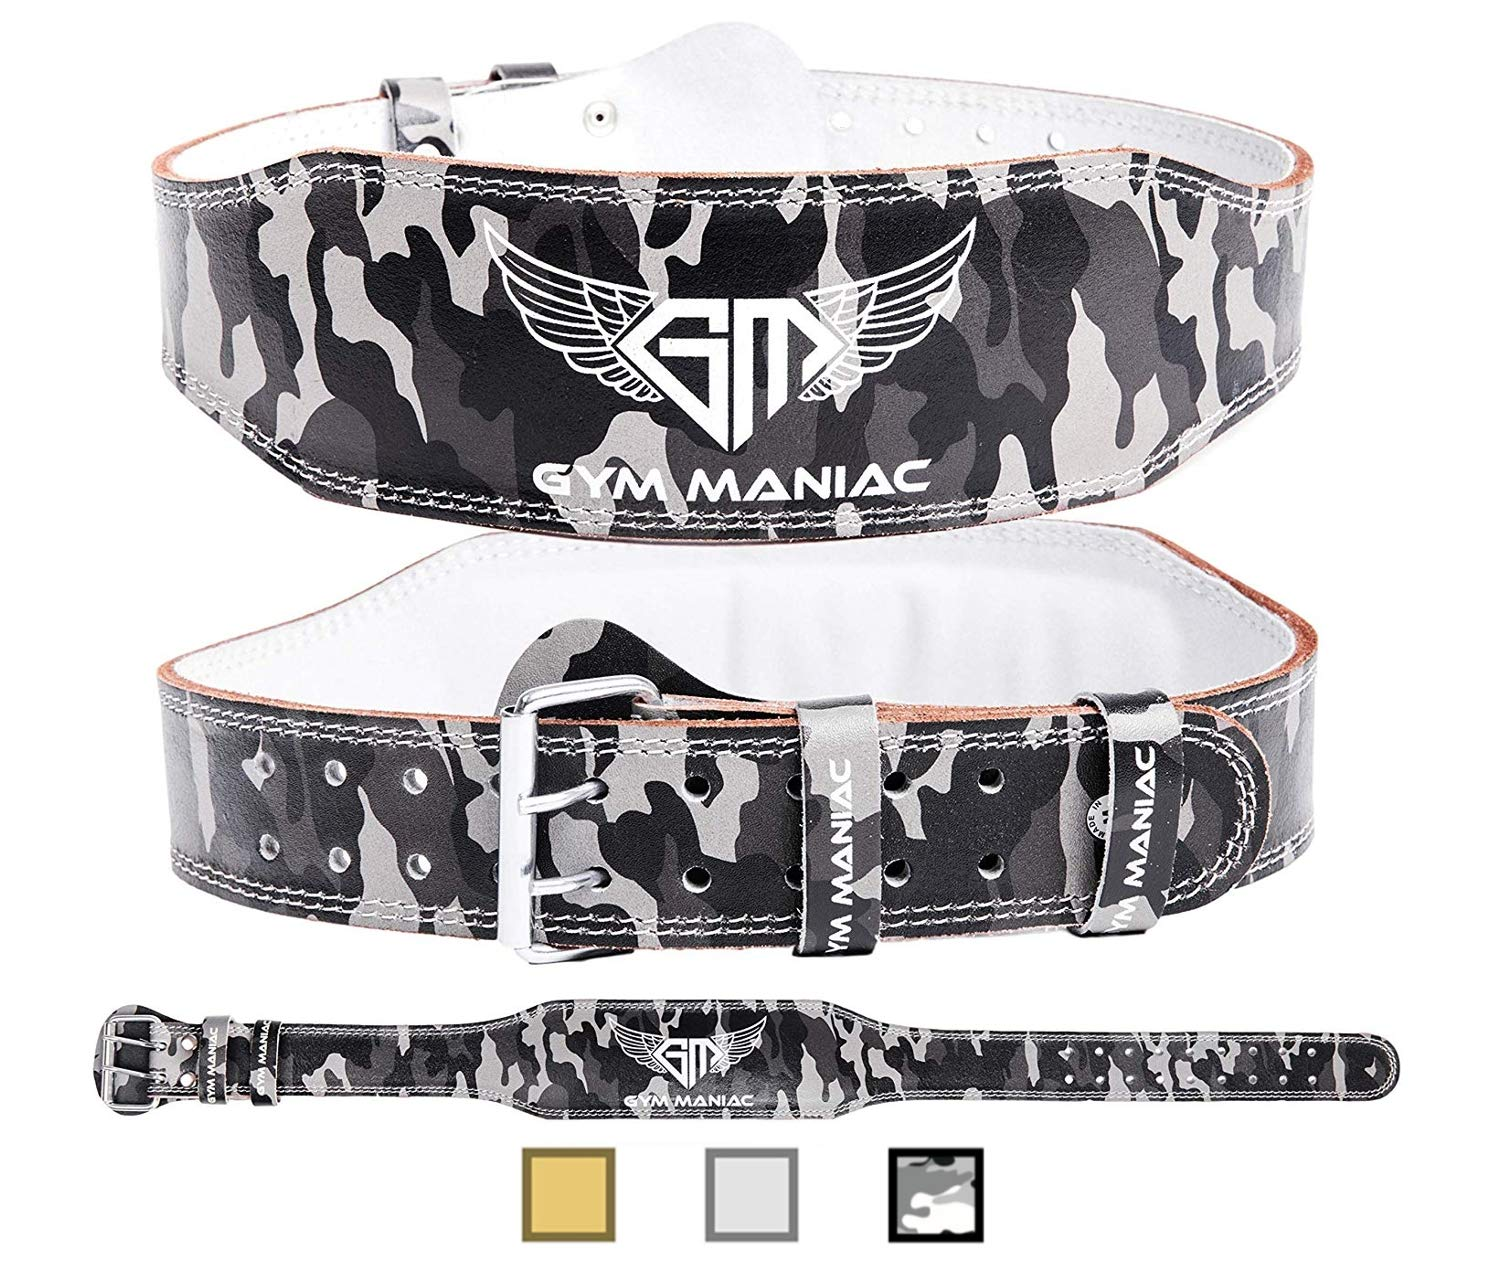 Gym Maniac GM Weight Lifting Waist Gym Belt | Adjustable Size, 2 Prong Buckle, Comfy Suede, Reinforced Stitching | Support Your Back & Alleviate Pains (CAMO, Small)